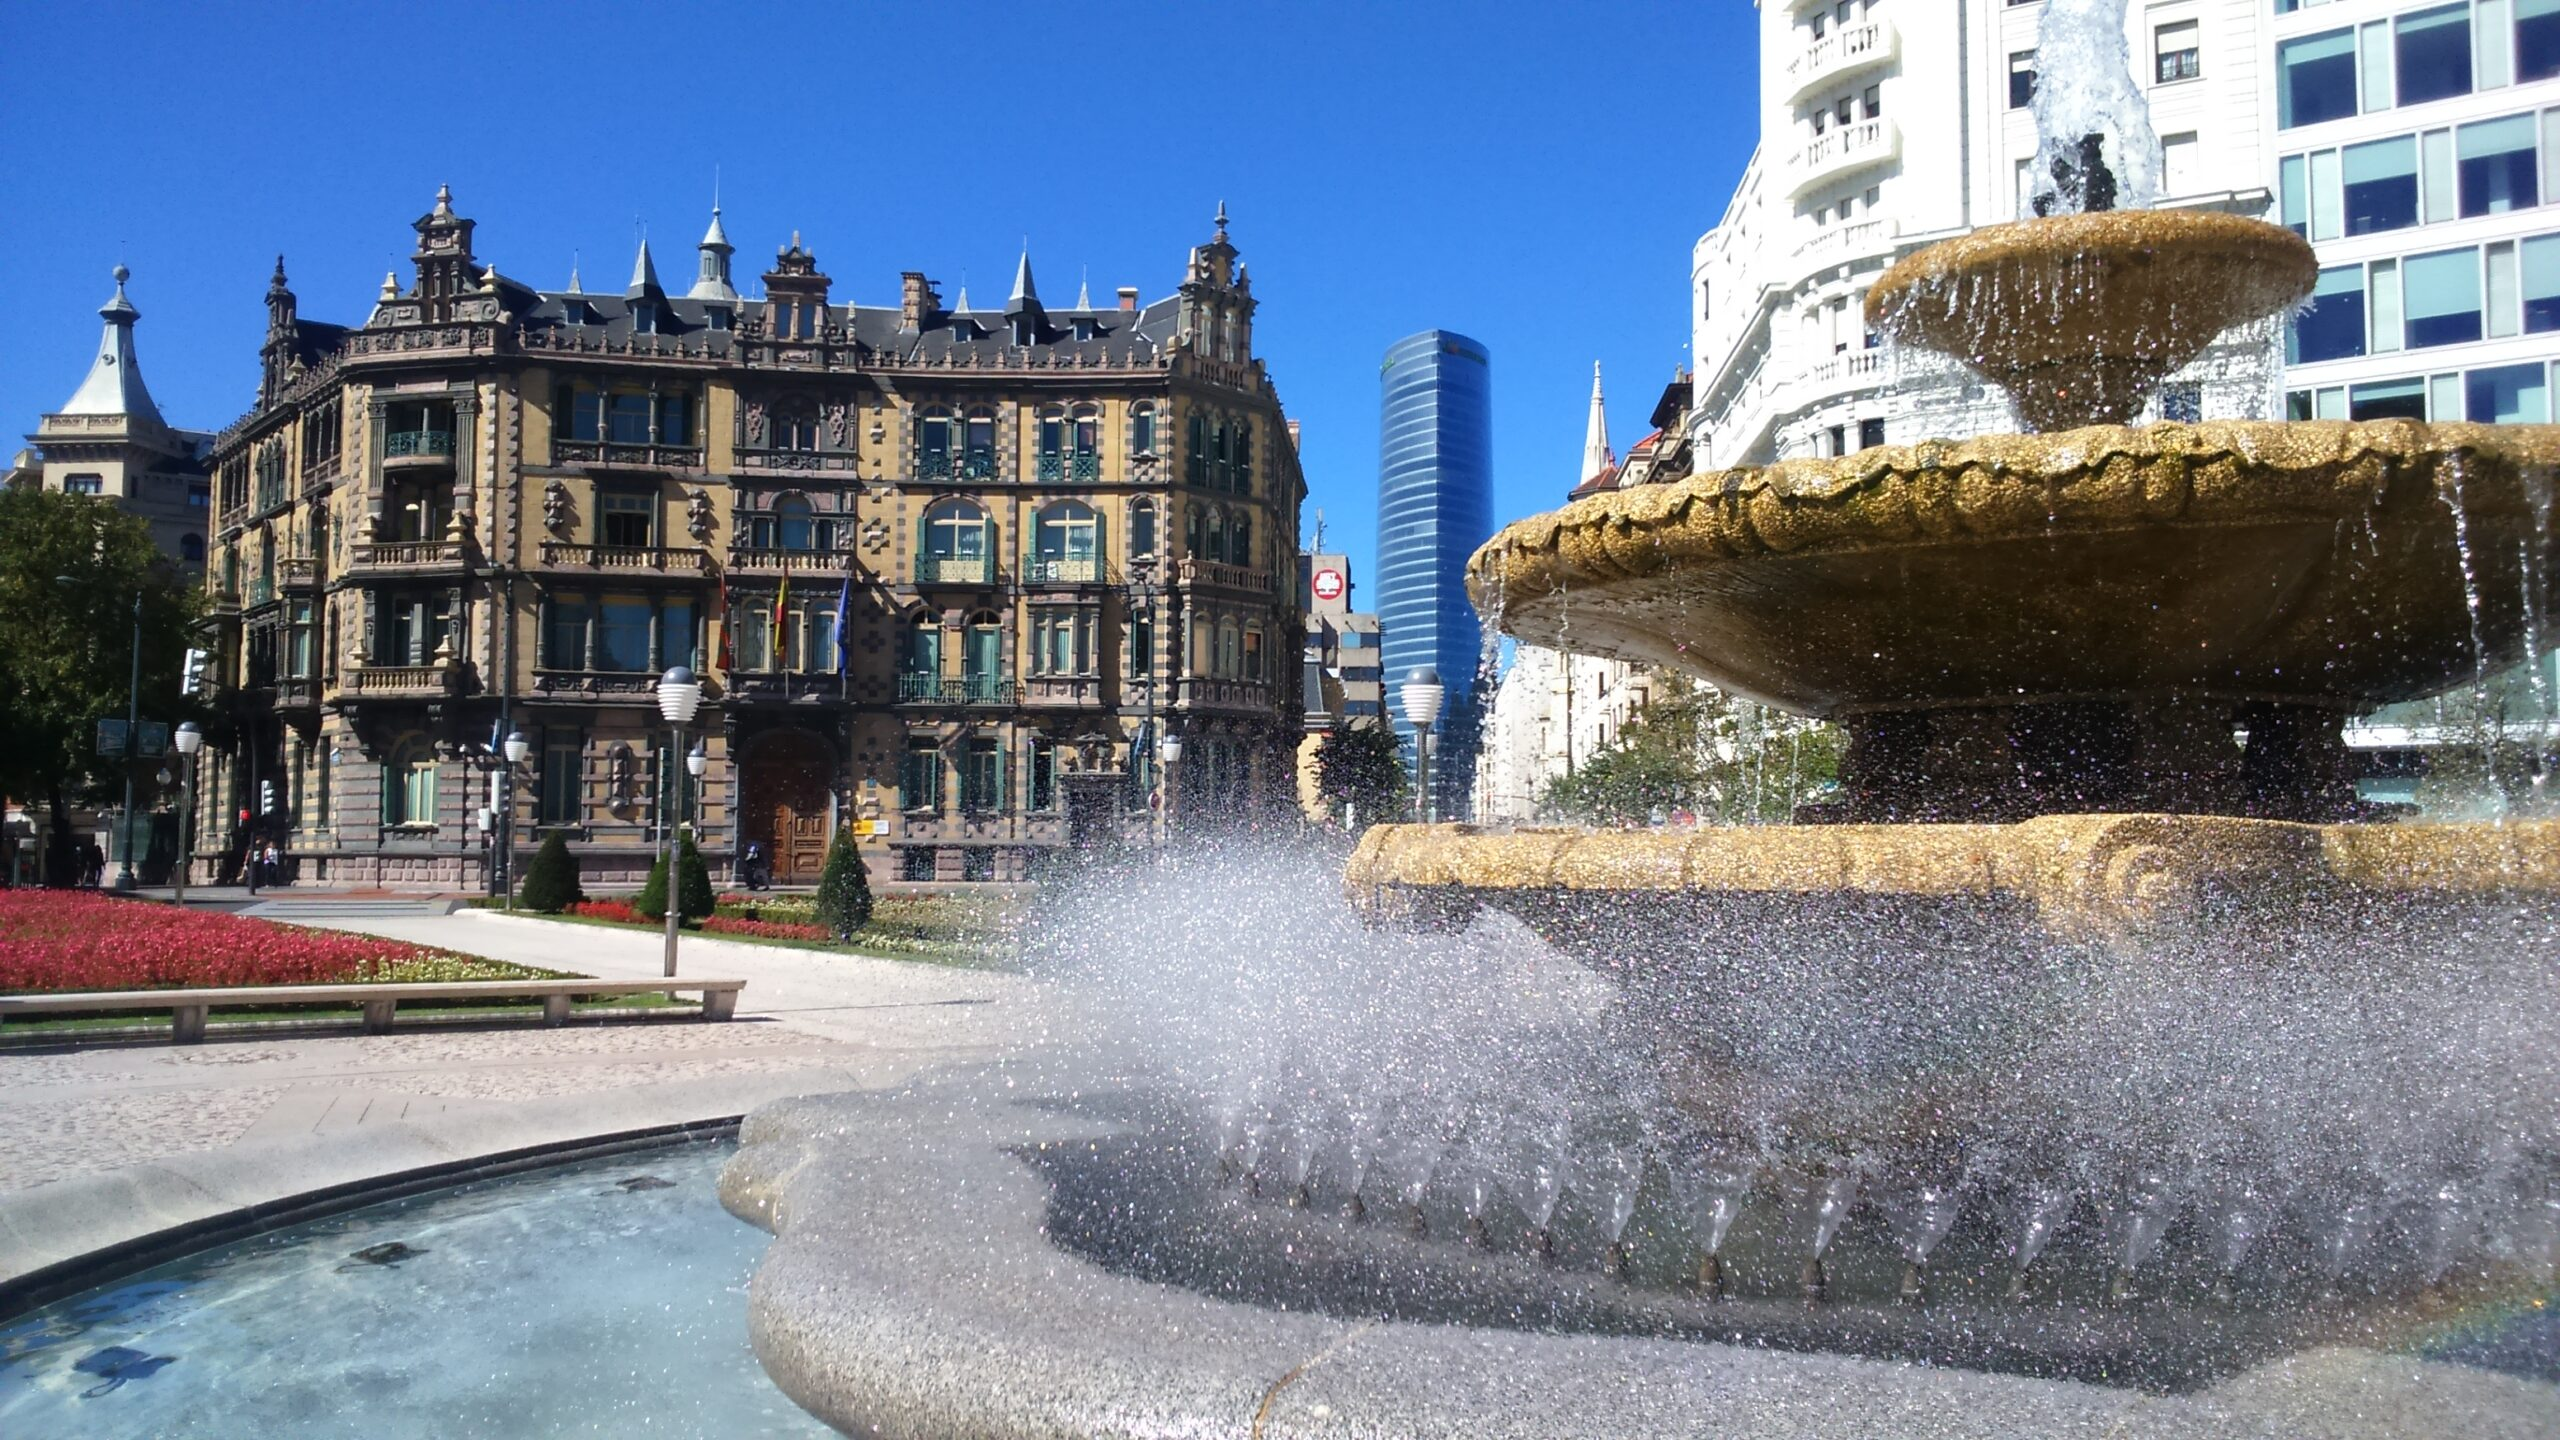 Start Your Insider Bilbao City Tour In The Center Of Bilbao